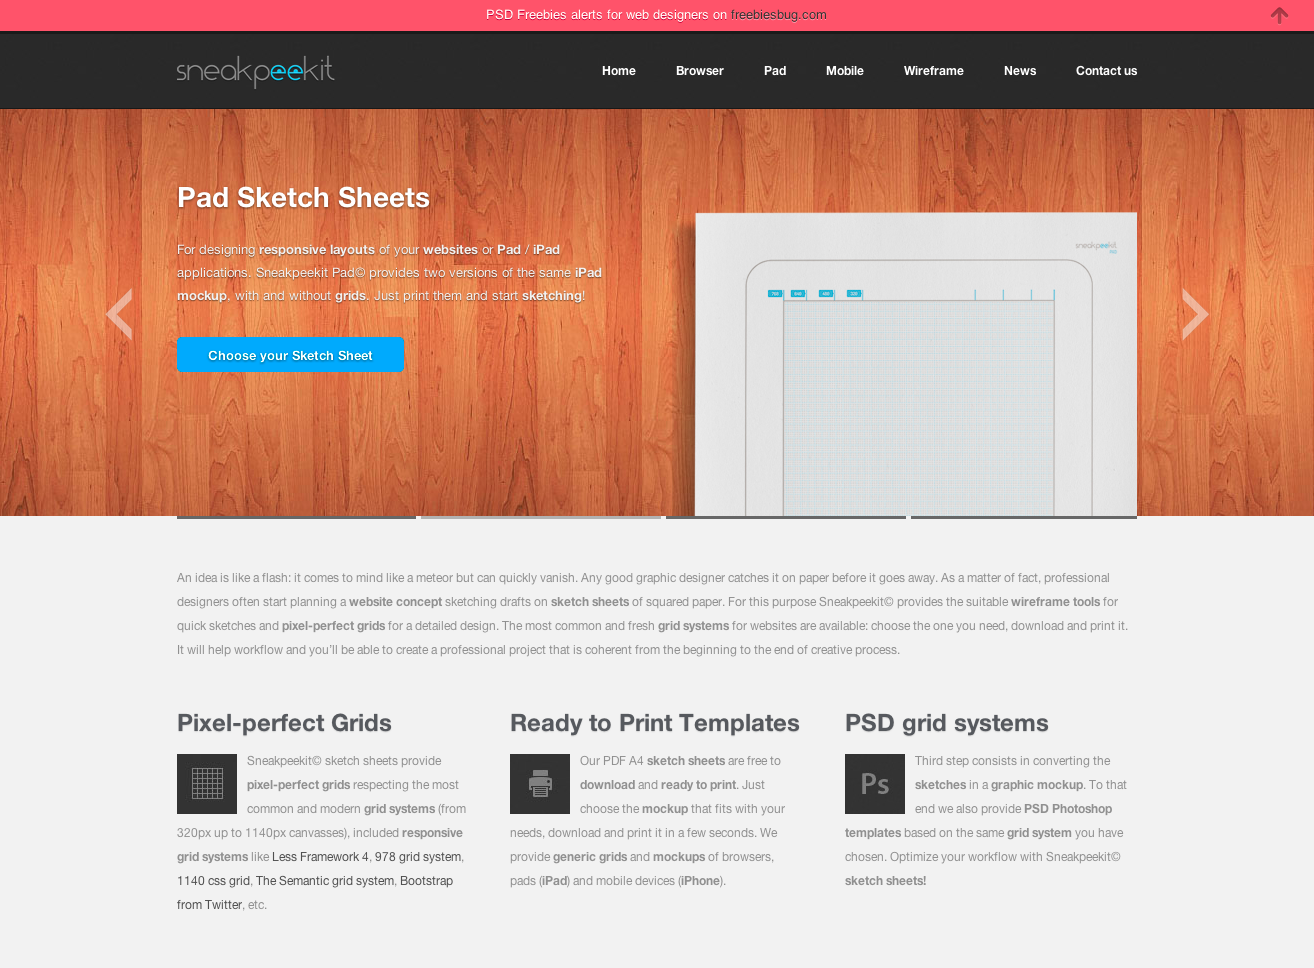 Ready to print pixel perfect sketch sheets at http://sneakpeekit.com/